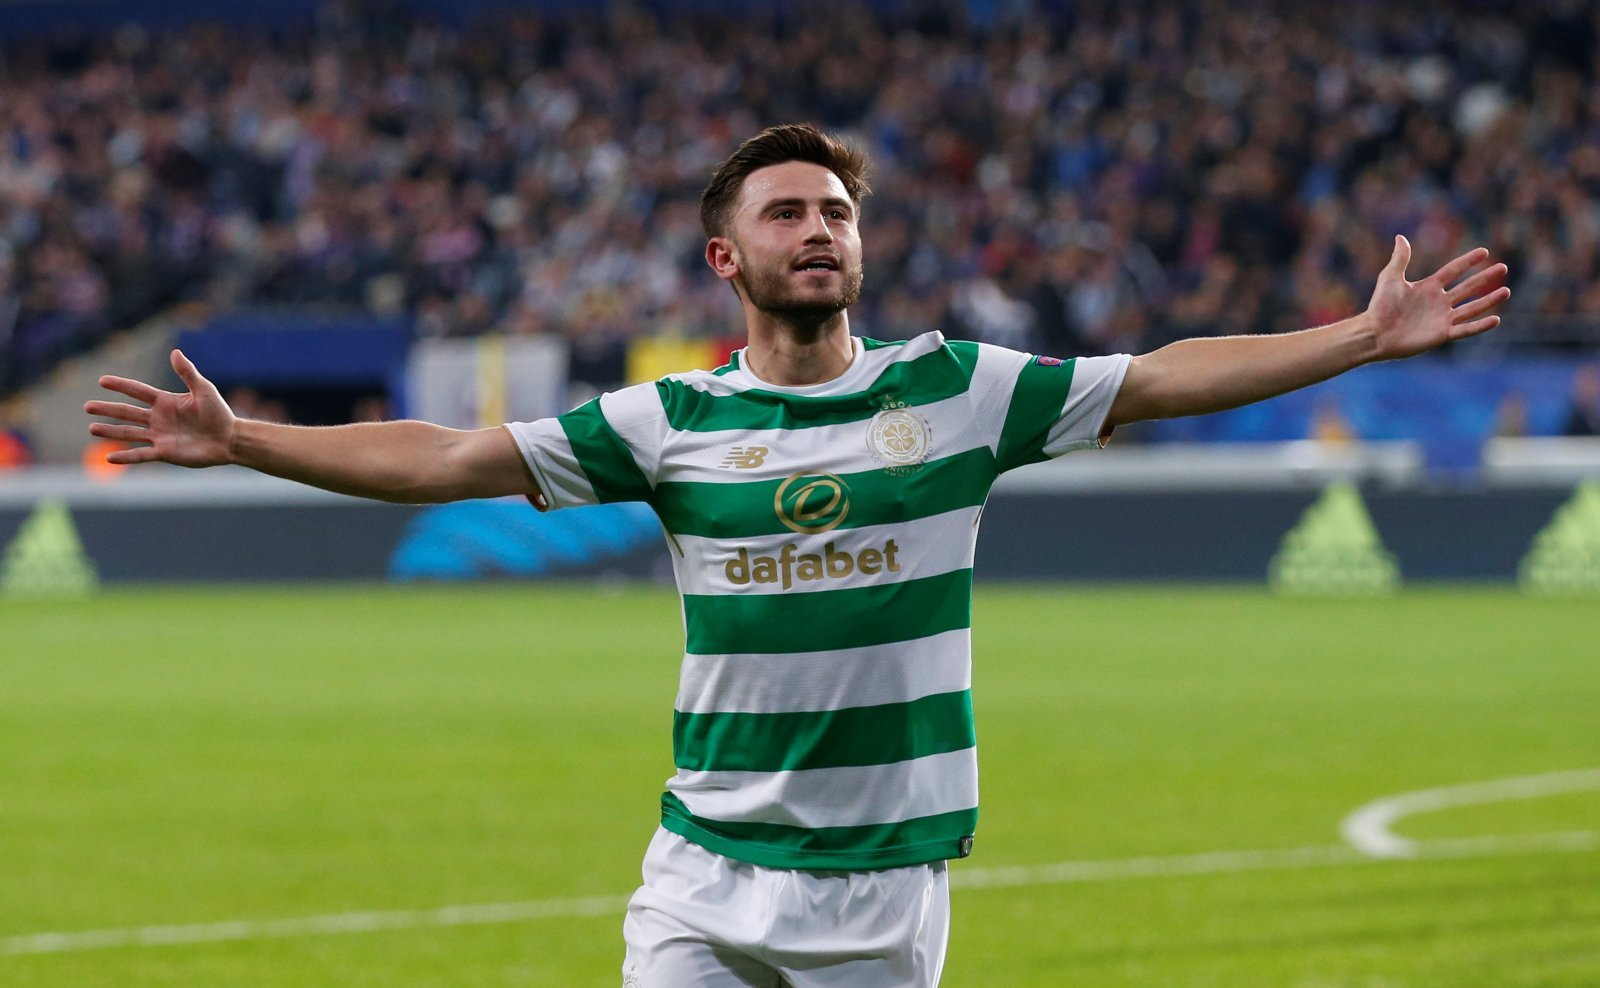 Man City winger Patrick Roberts may be the spark Huddersfield are looking for